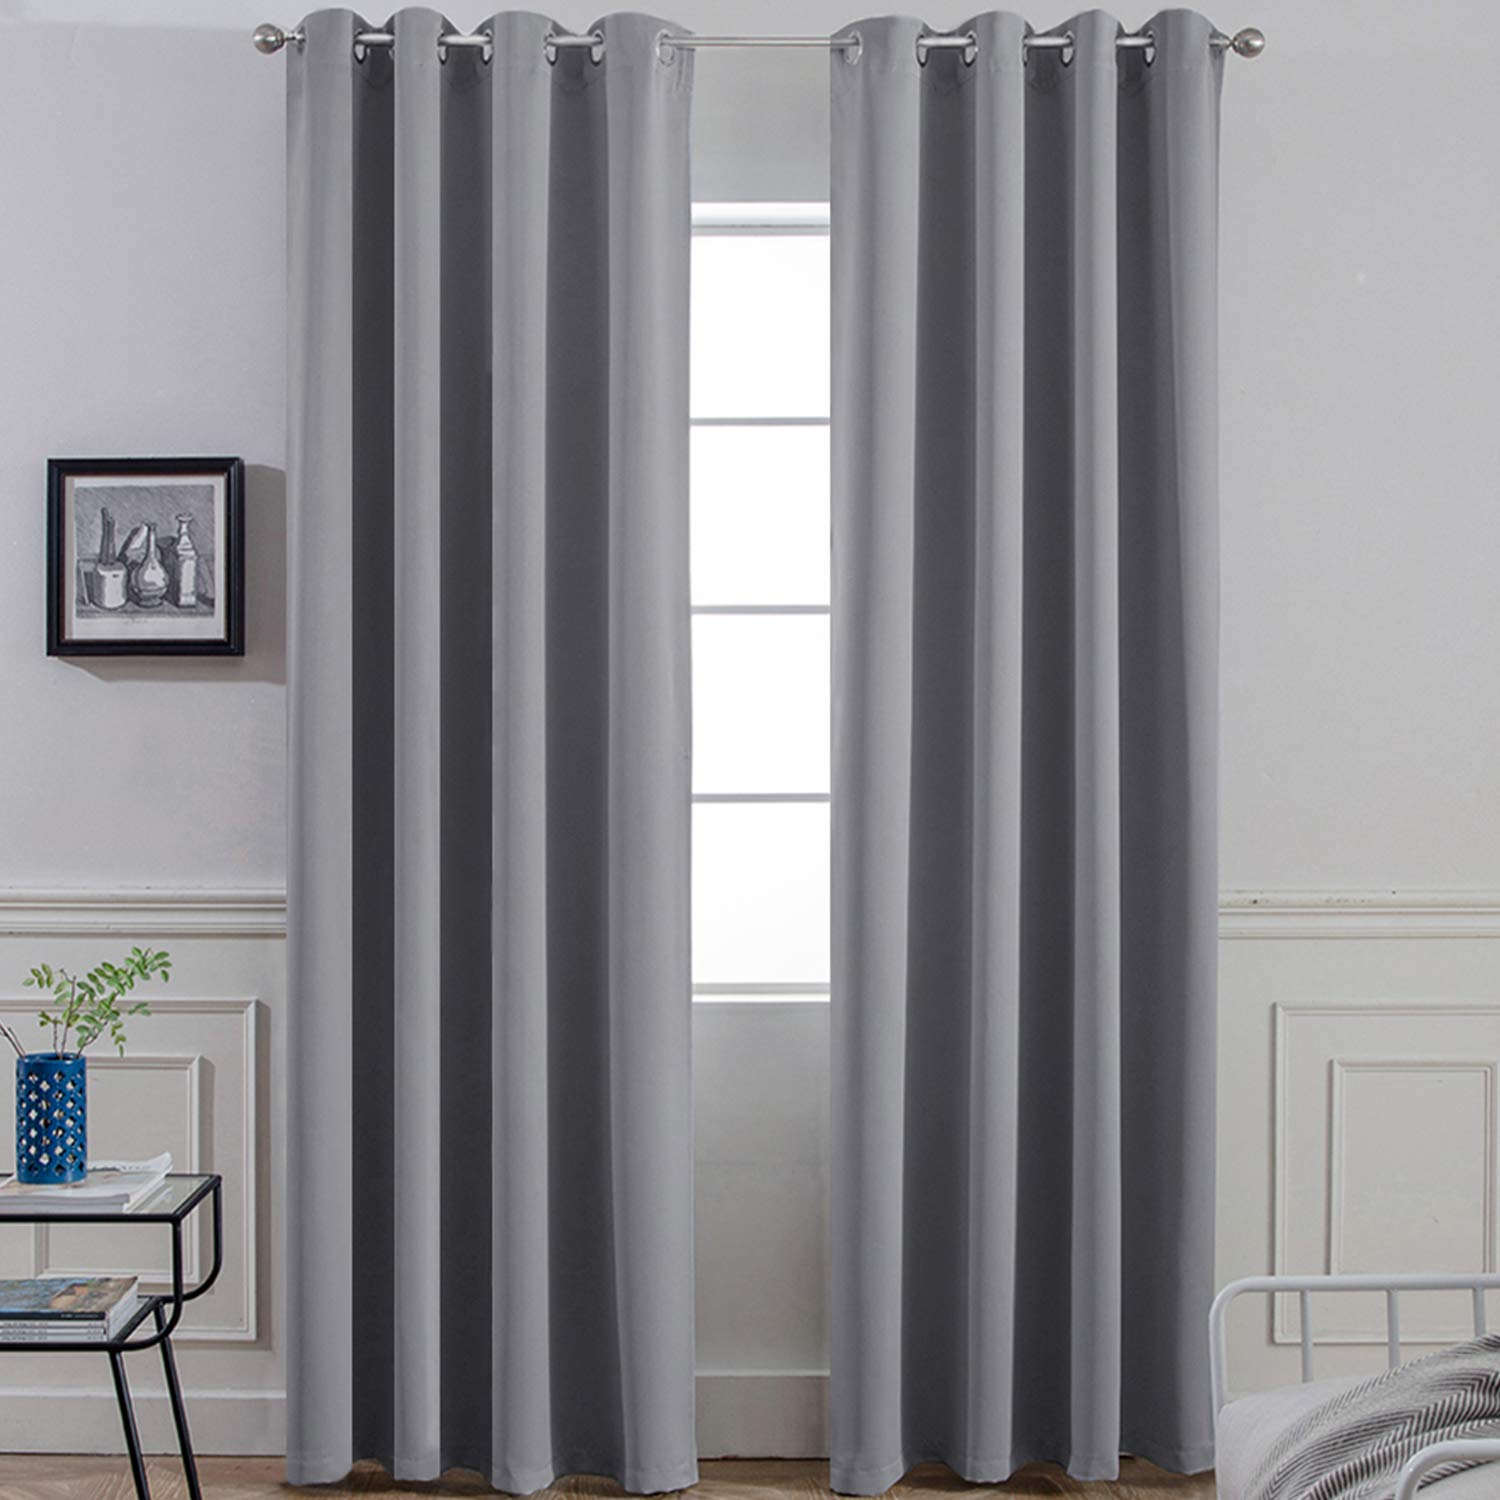 Yakamok Room Darkening Gray Blackout Curtains